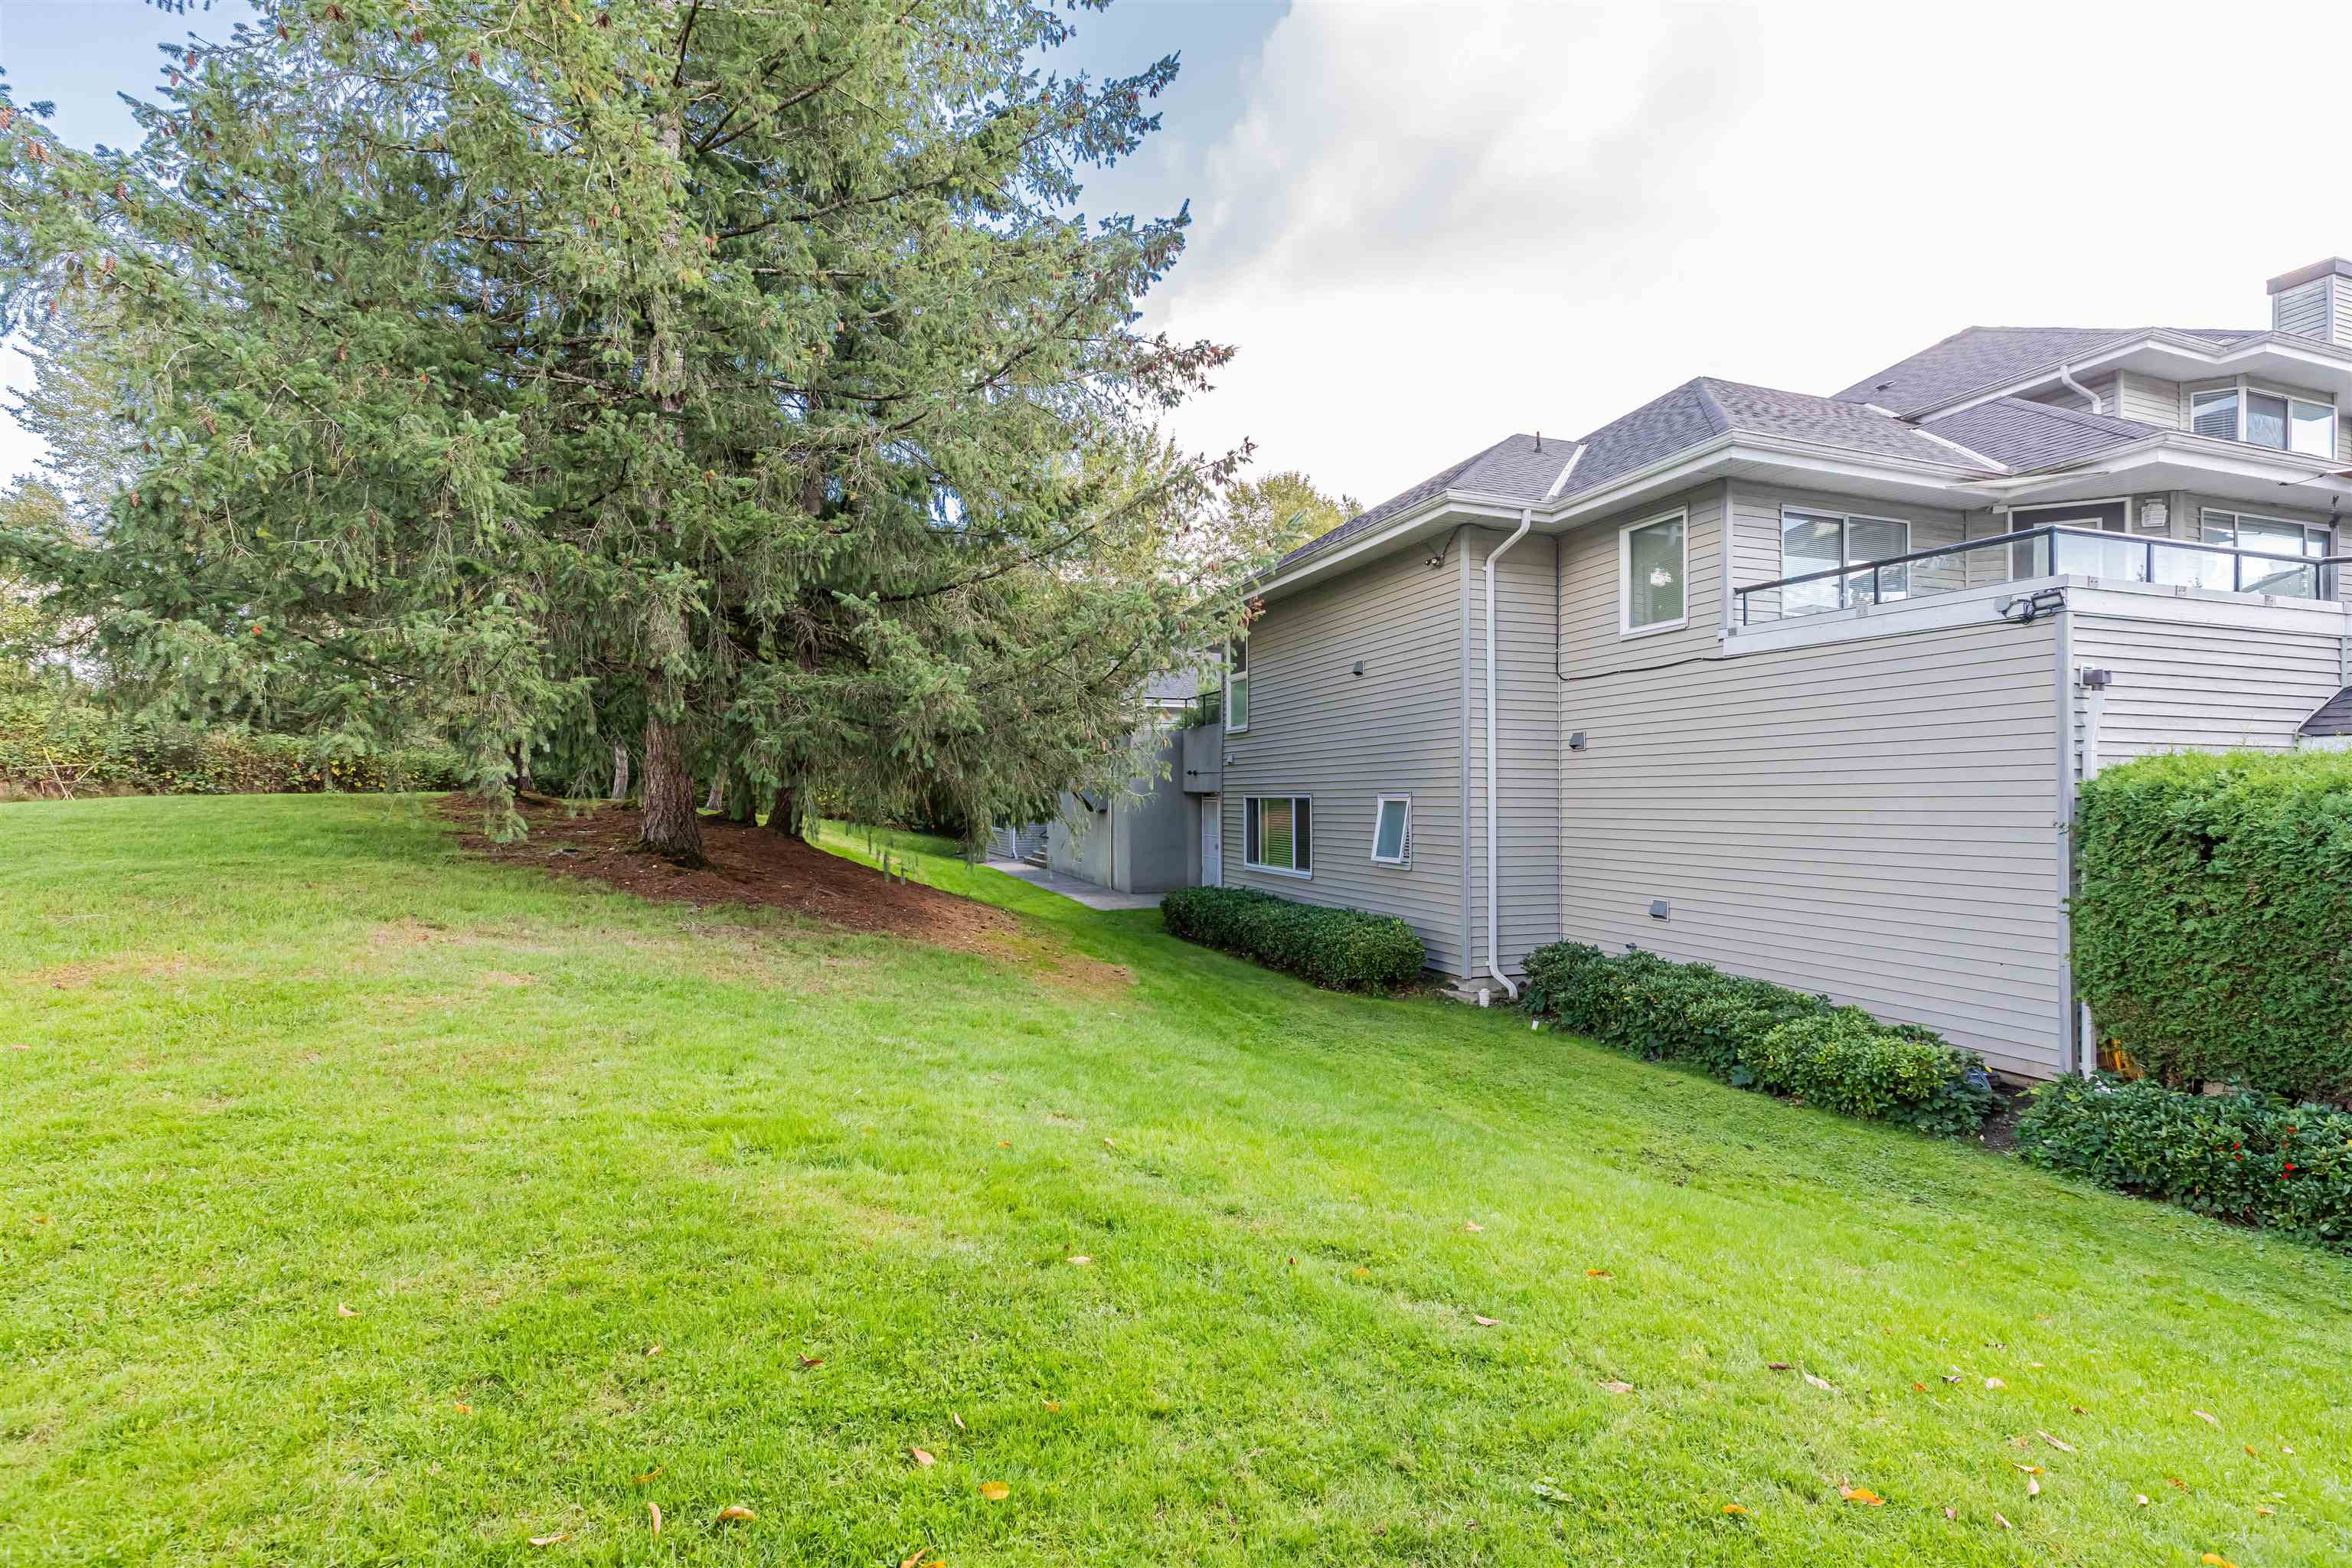 6 13670 84 AVENUE - Bear Creek Green Timbers Townhouse for sale, 2 Bedrooms (R2625536) - #27